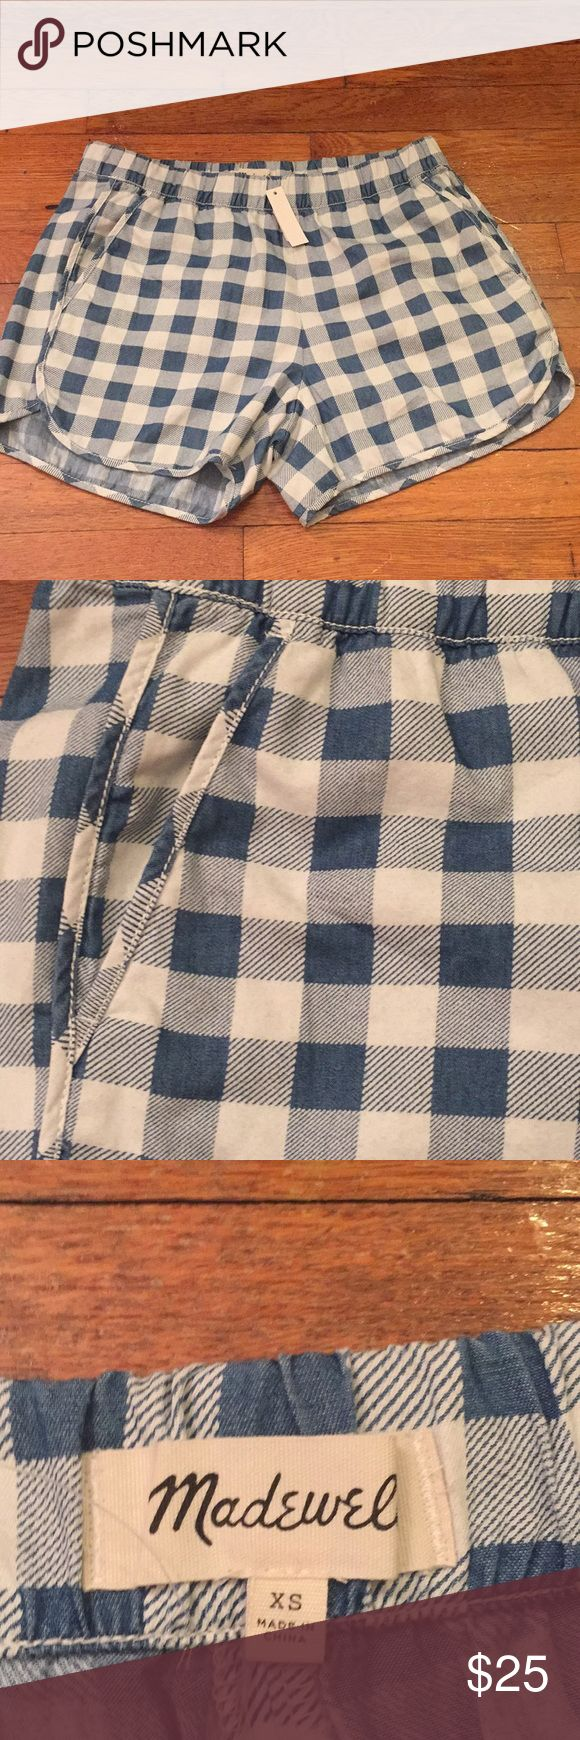 """NWT Madewell pull-on shorts in gingham check Our favorite pull-on shorts in timeless indigo checks. Super-comfortable and cool, they swap in effortlessly for a pair of cutoffs.  True to size. 3 1/2"""" inseam. Cotton. Madewell Shorts"""